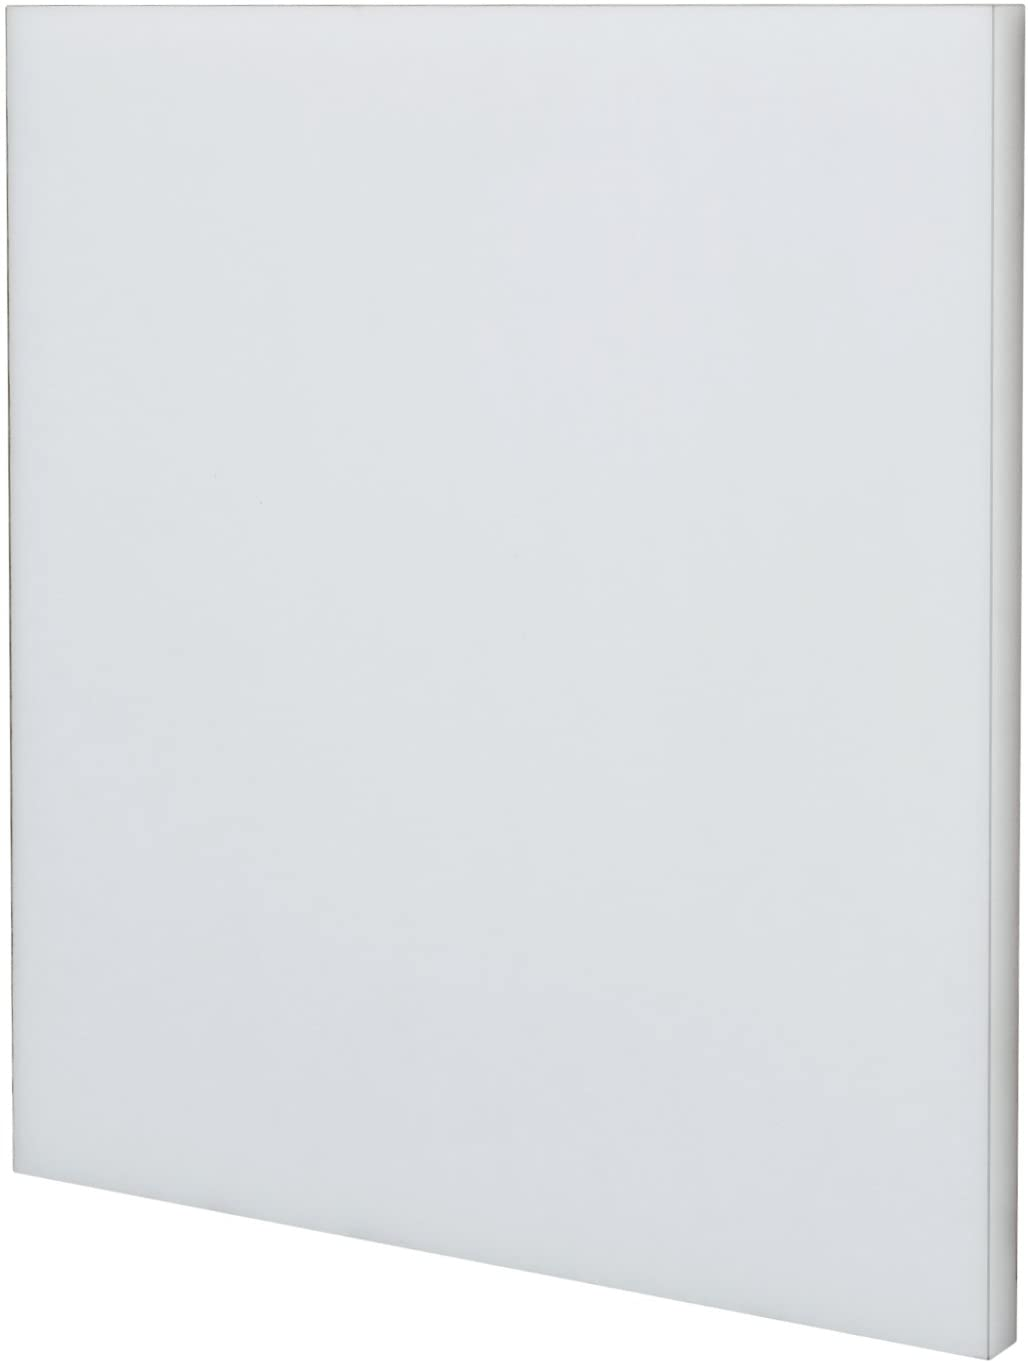 SOURCEONE.ORG Source One Premium UHMW, Ultra High Molecular Weight Polyethylene, Sheets, Available in Every Size and Thickness,Opaque White (1/8 Inch Thick, 12 x 24)